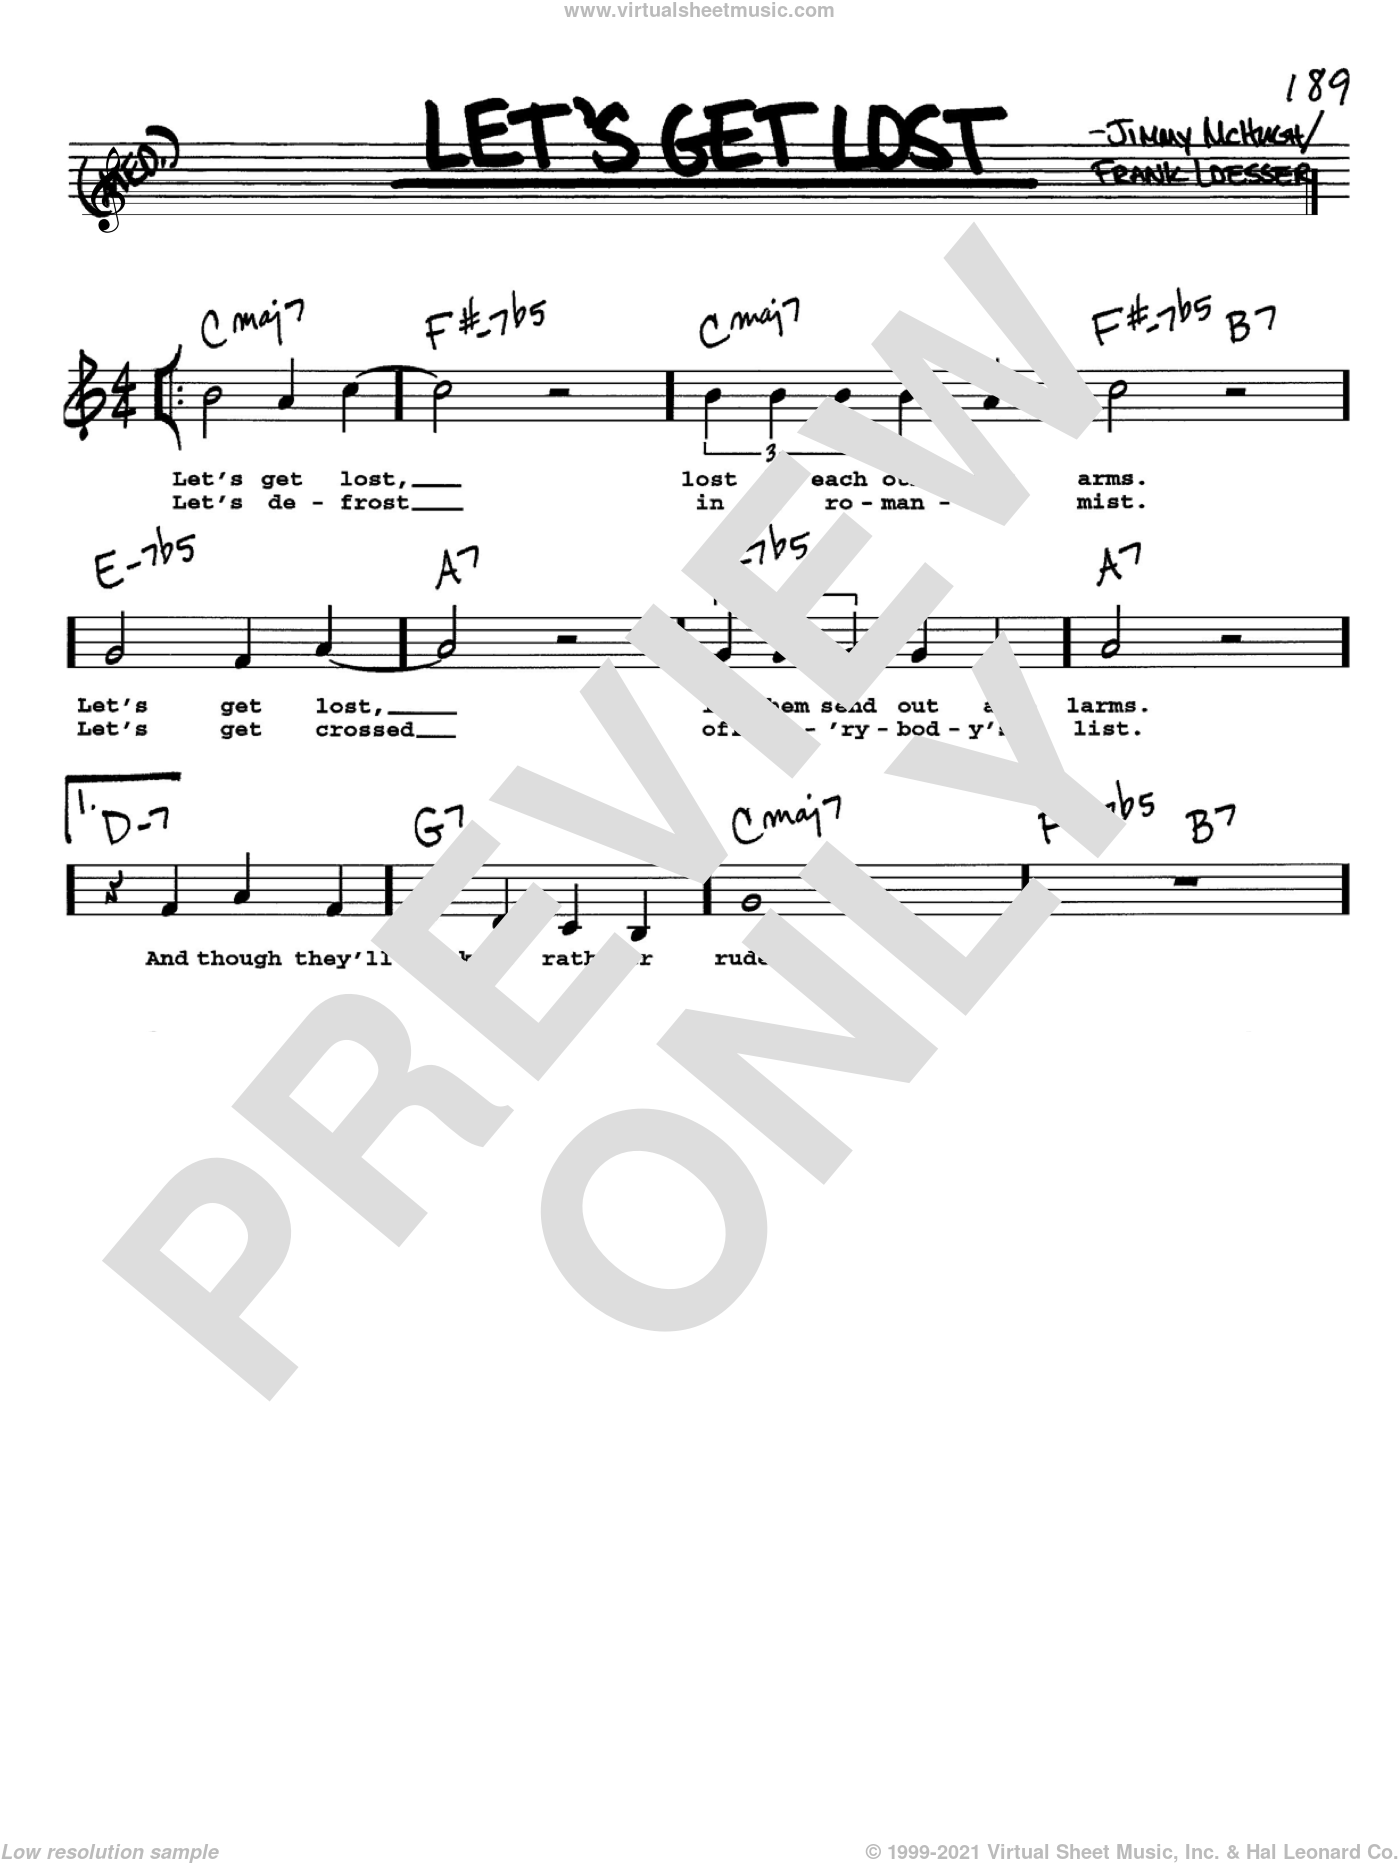 Let's Get Lost sheet music for voice and other instruments (Vocal Volume 1) by Jimmy McHugh and Frank Loesser. Score Image Preview.